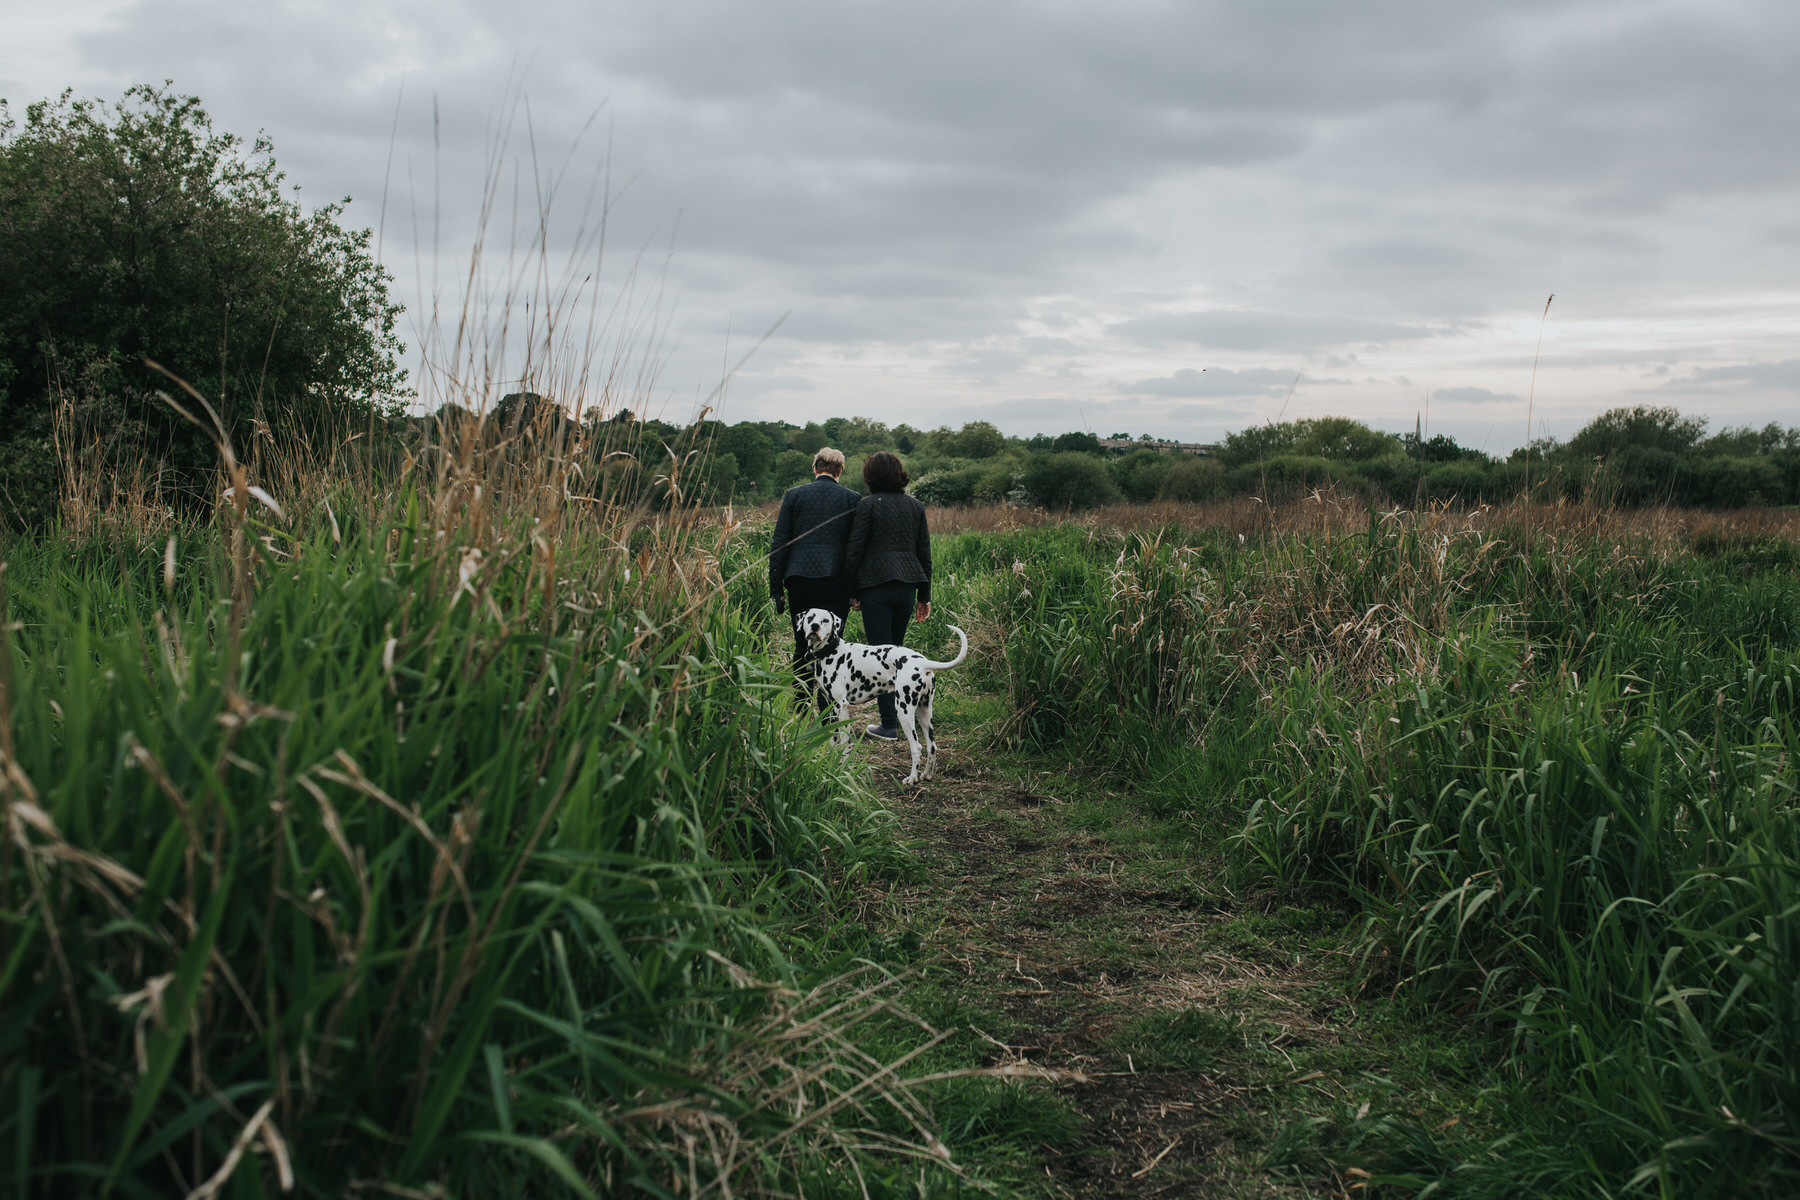 92 moody clouds Hackney marshes relaxed engagement shoot dalmatian dog.jpg